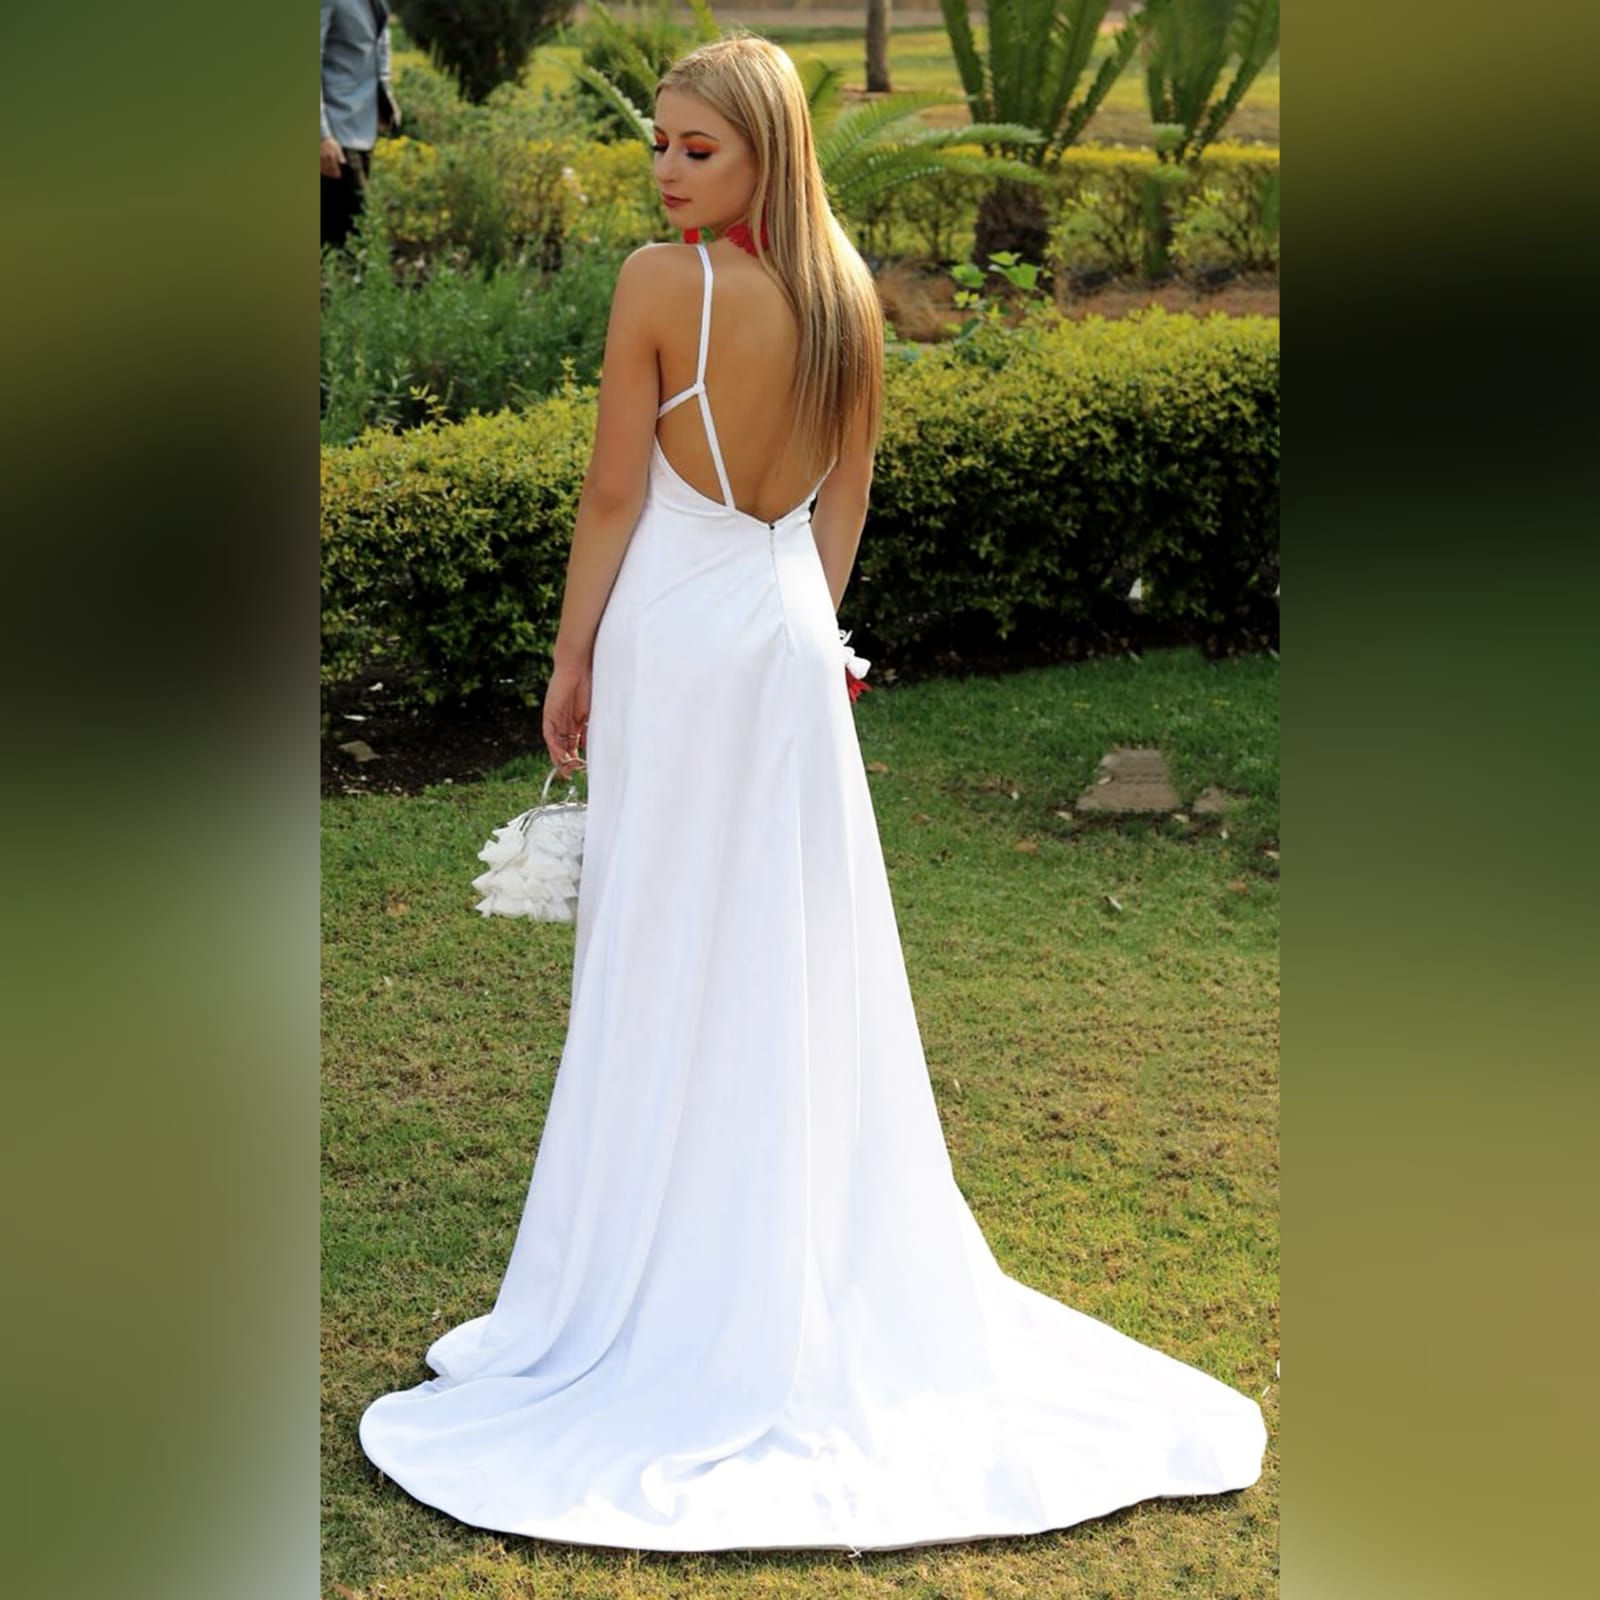 White satin long prom dress with a low open back 1 white satin long prom dress with a low open back, with strap detail. Straight neckline, 2 slits and a train.